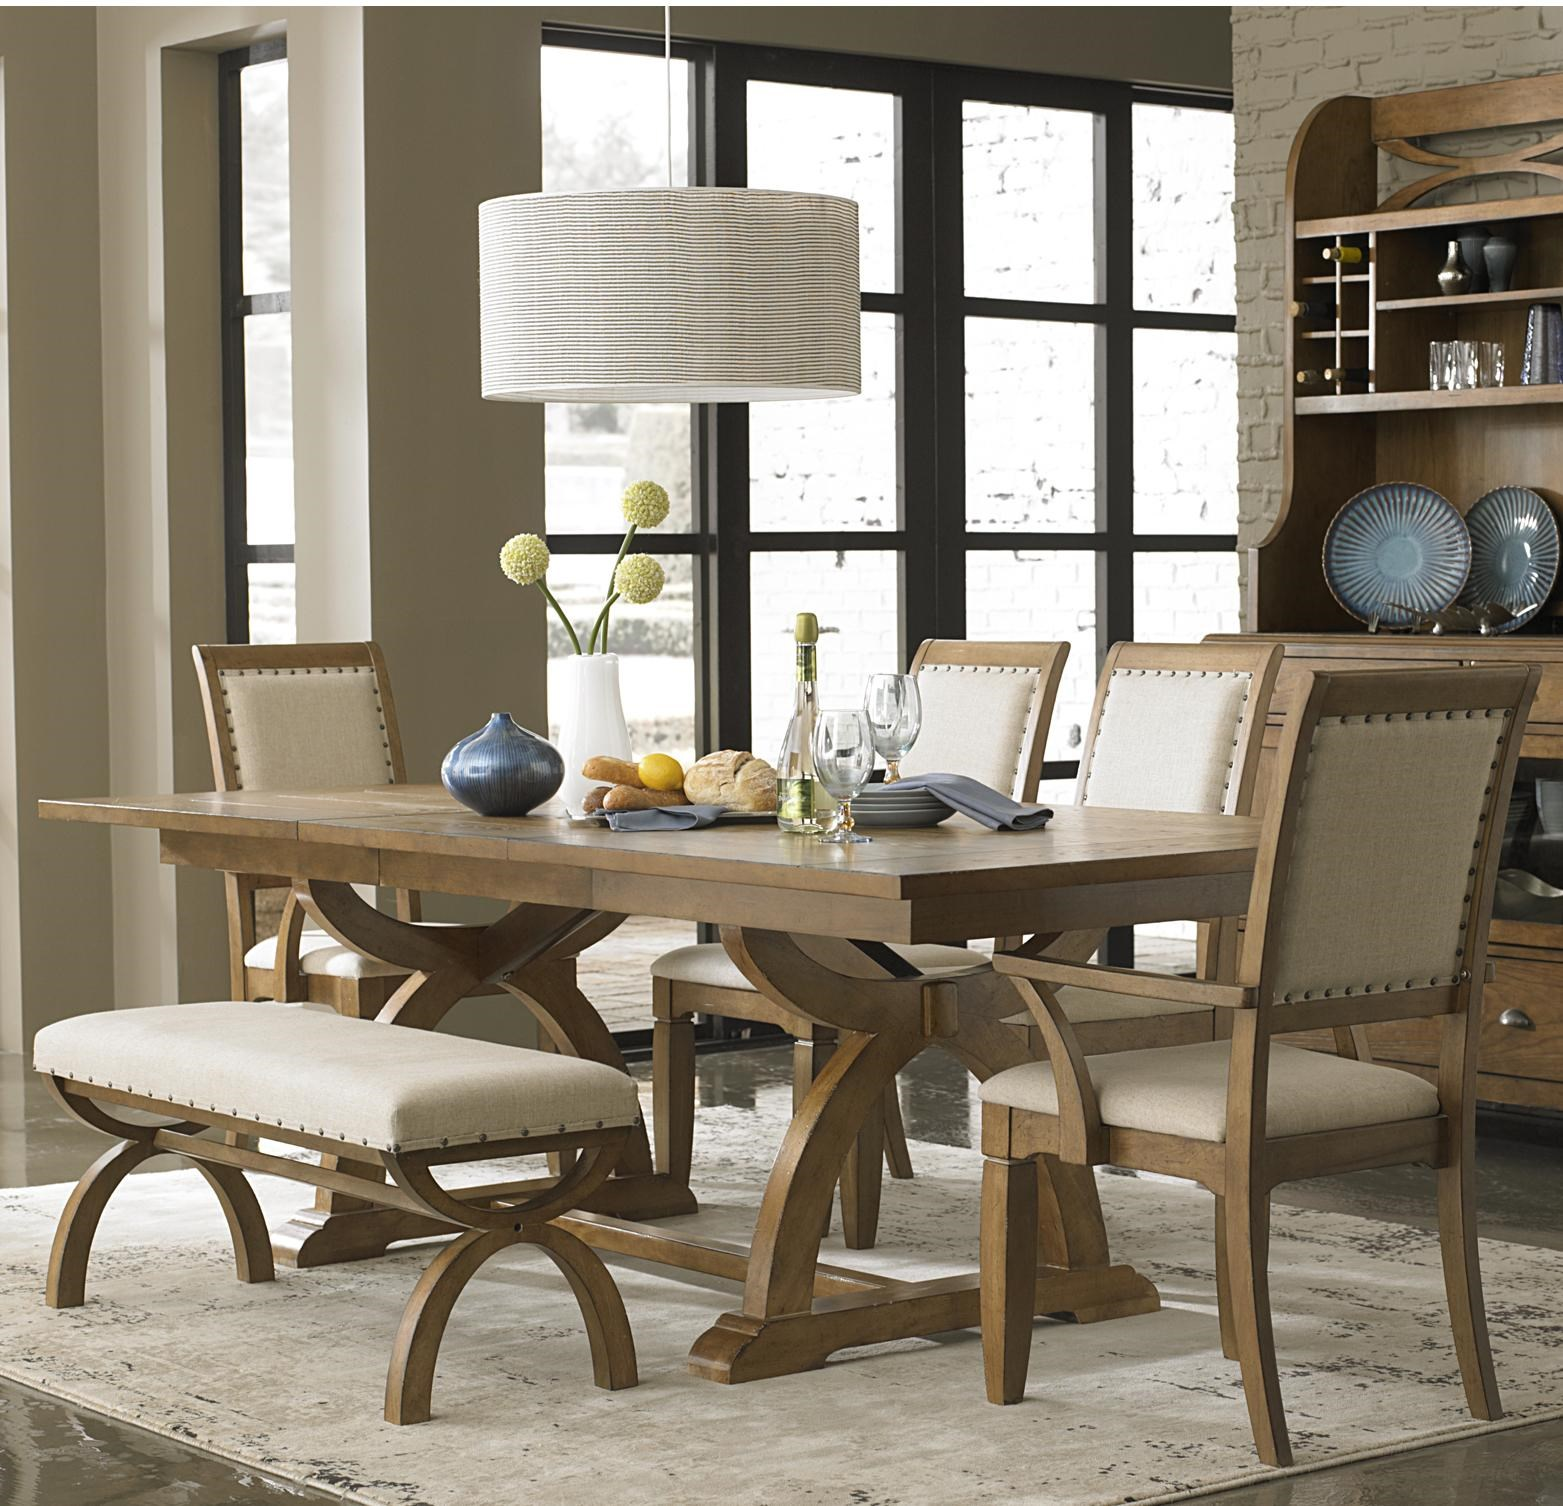 Liberty Furniture Town U0026 Country 6 Piece Trestle Table Set With 4  Upholstered Chairs U0026 Dining Bench   Novello Home Furnishings   Dining 5  Piece Set